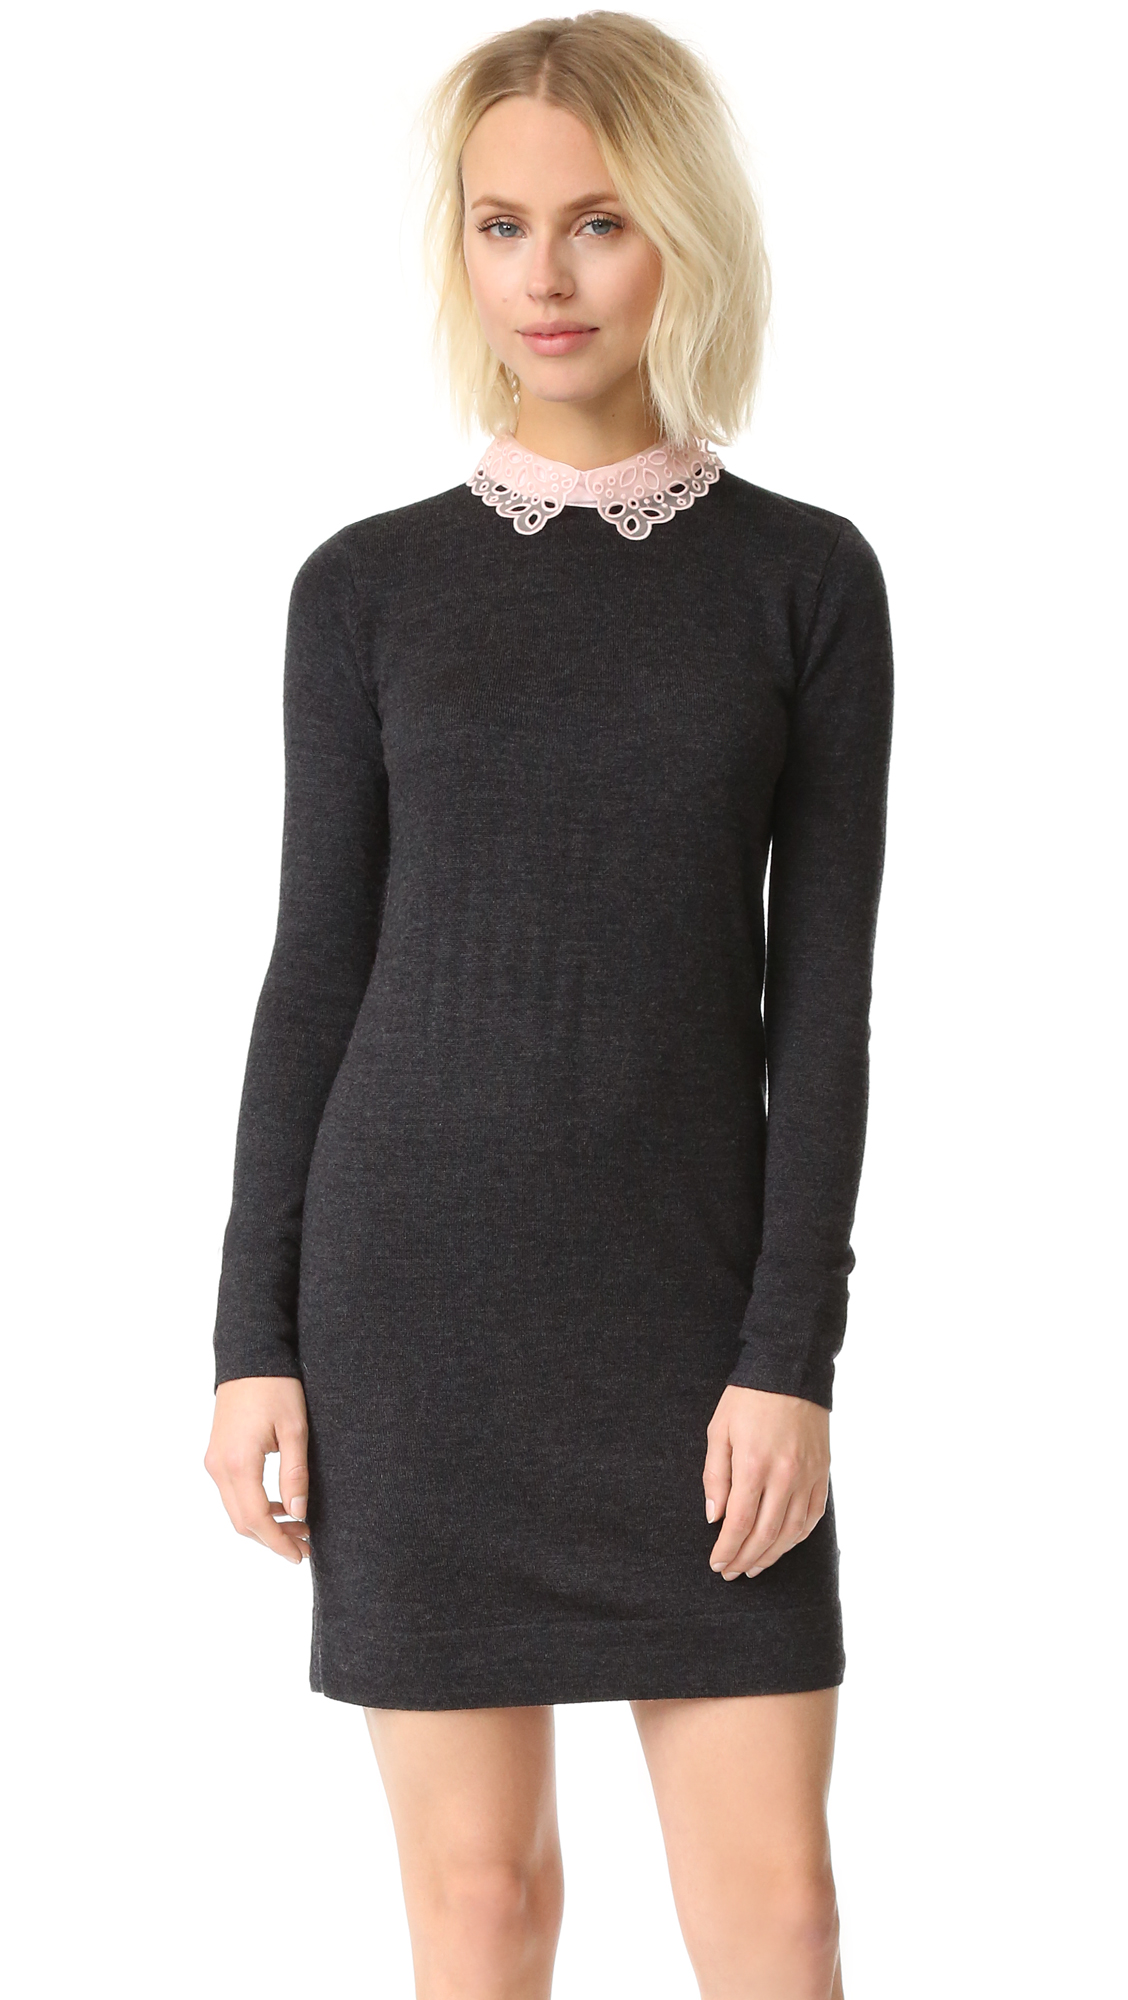 Club Monaco Lissah Lace Collar Sweater Dress Shopbop Save